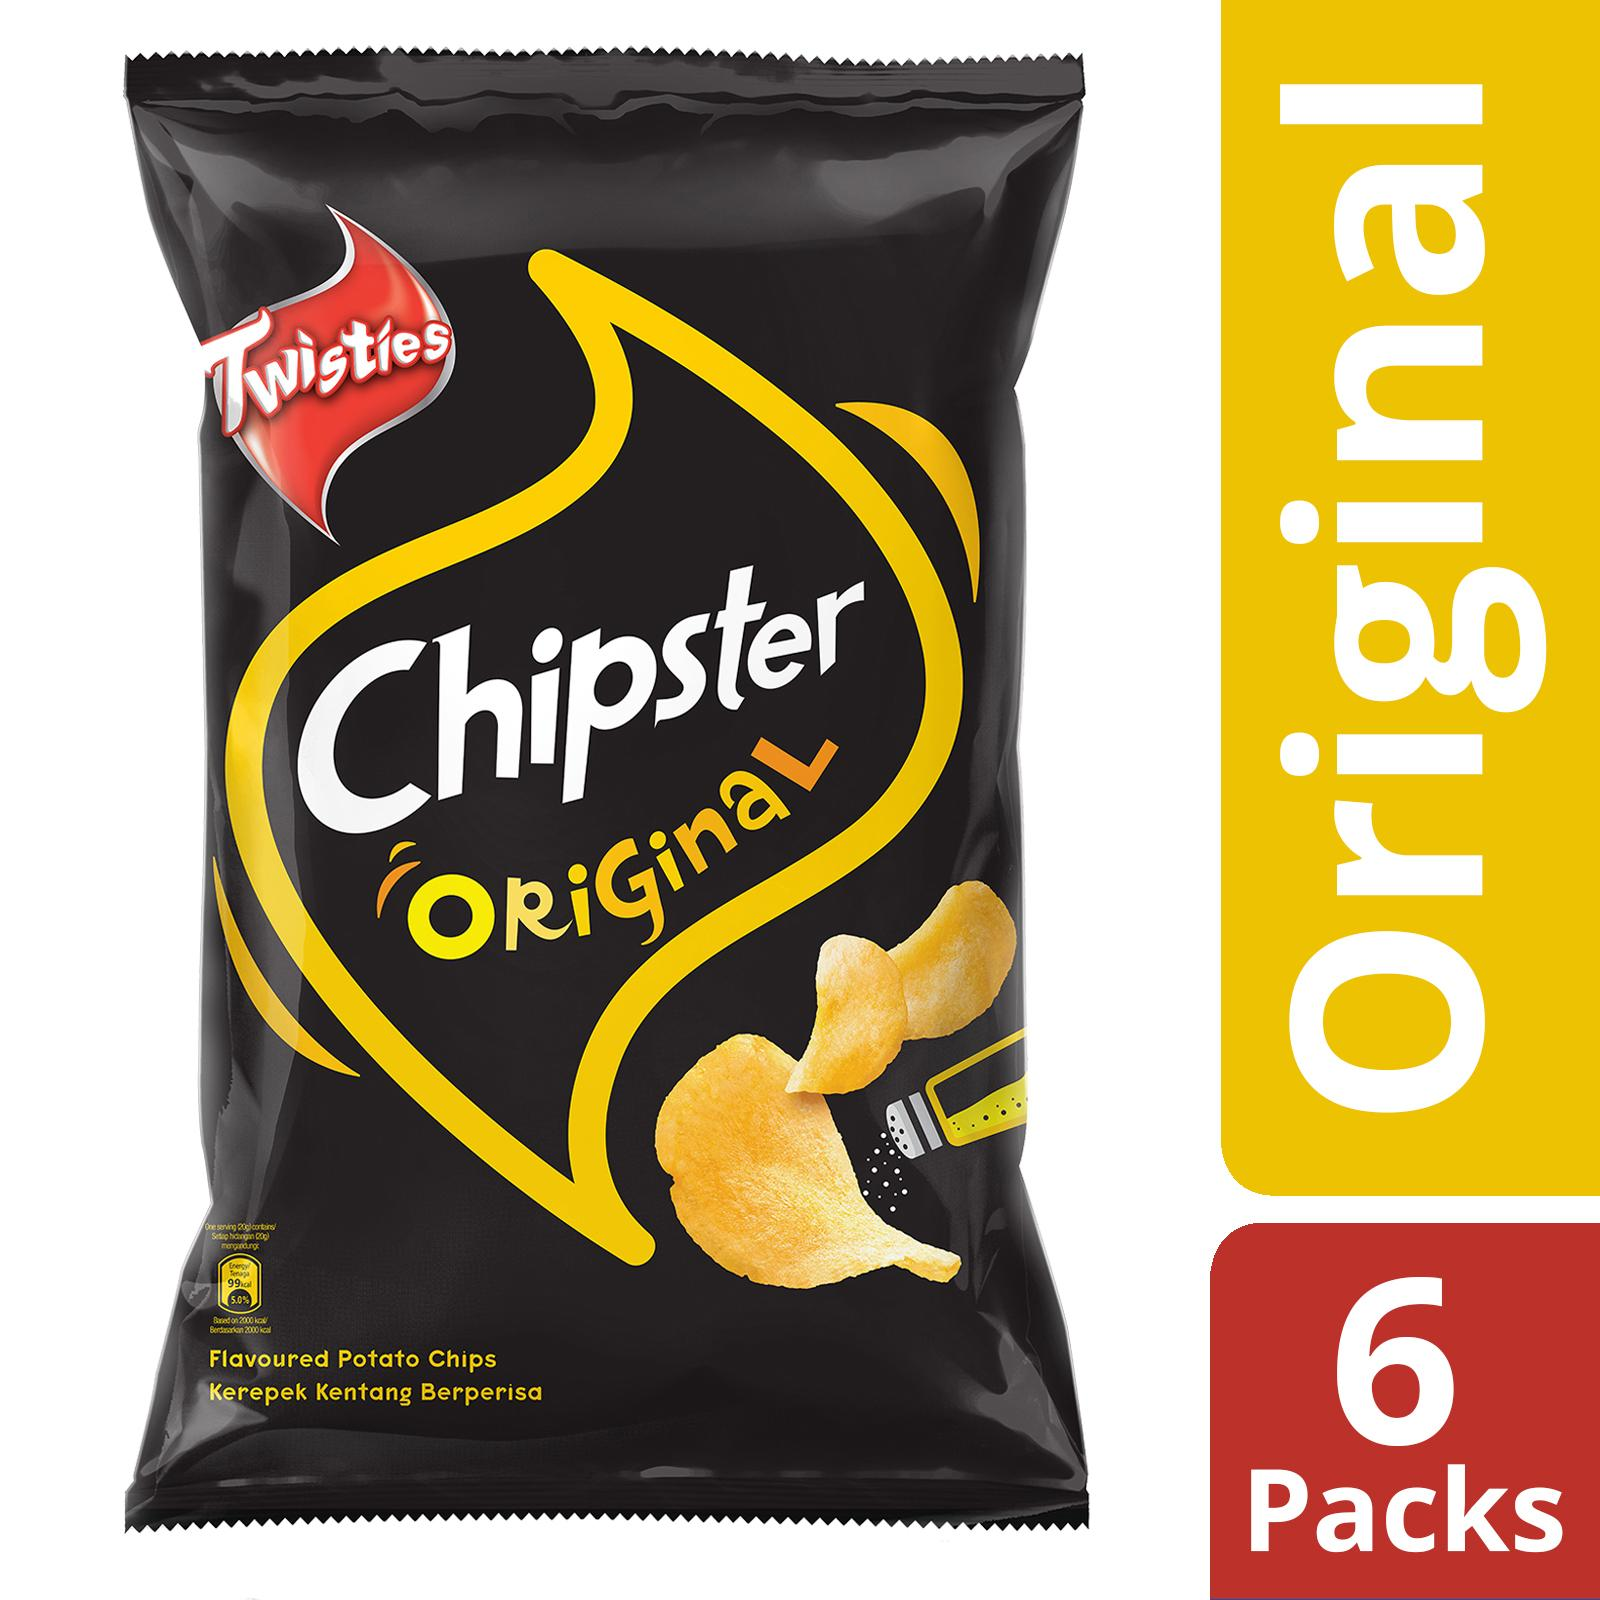 Twisties Chipster Crisp Potato Chips, Original, Pack Of 6, 160g Each By Mondelez Official Store.